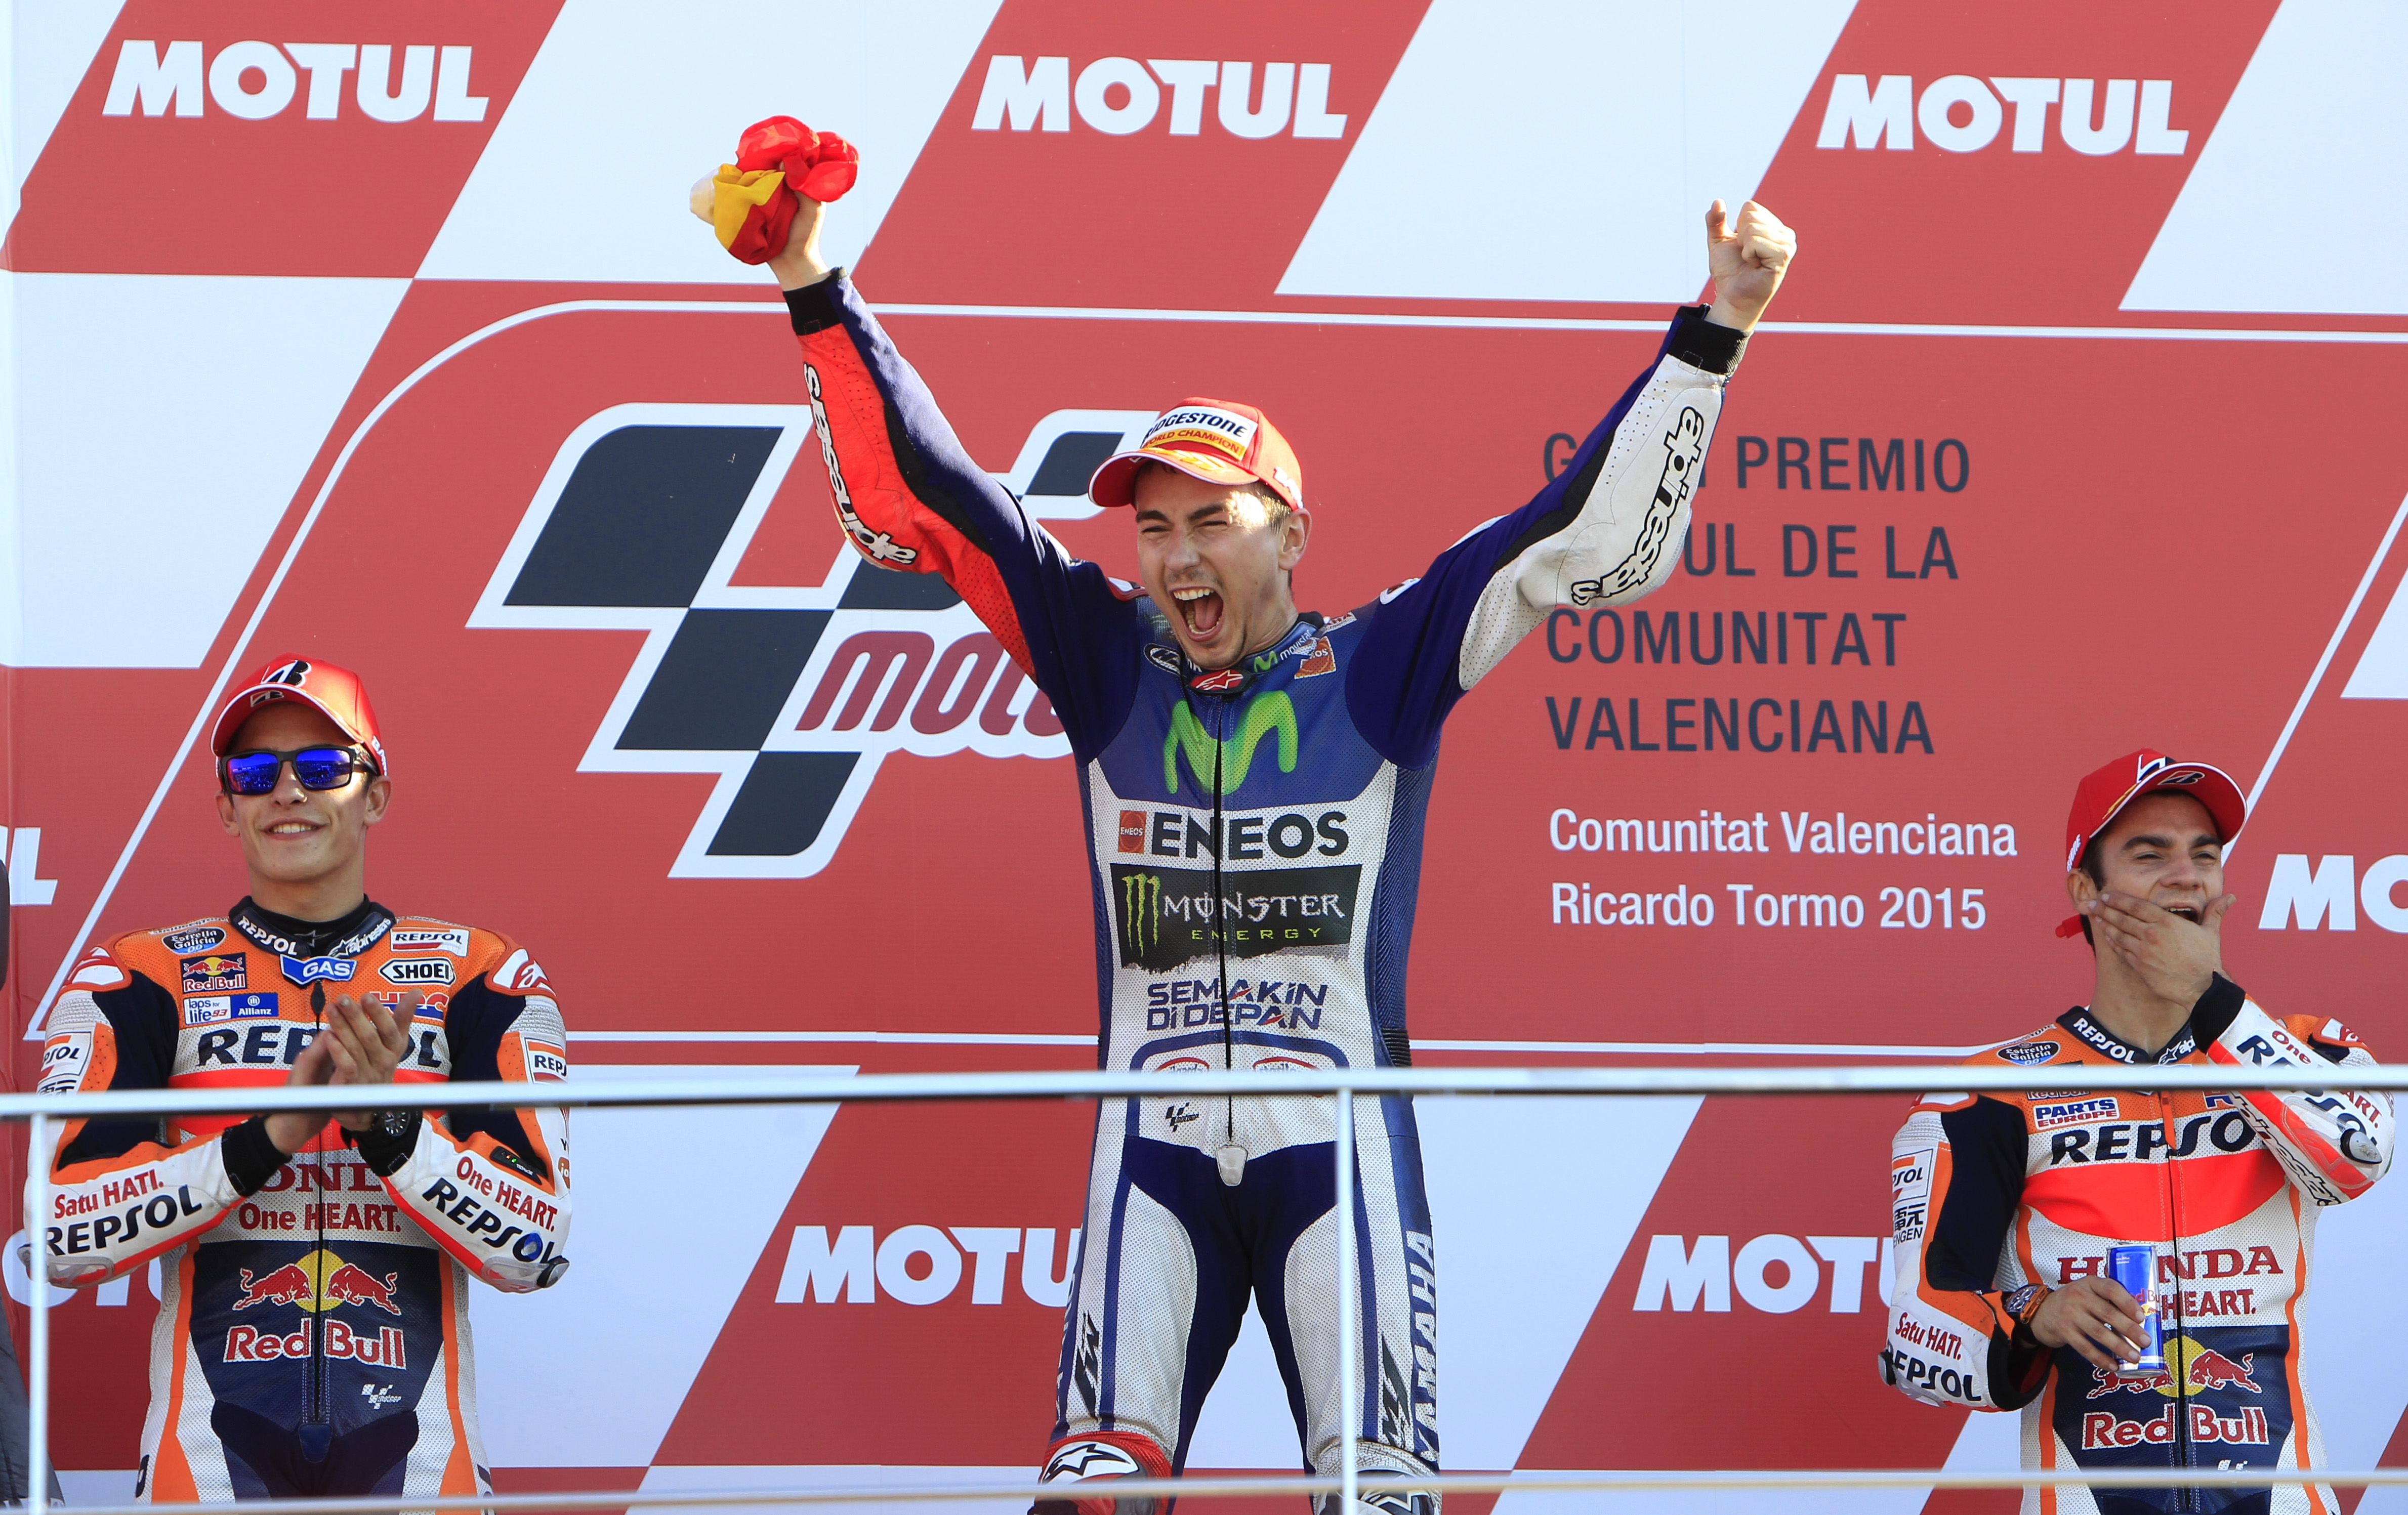 spain_motogp_motorcycle_racing-94edbcfed_r3795.jpeg